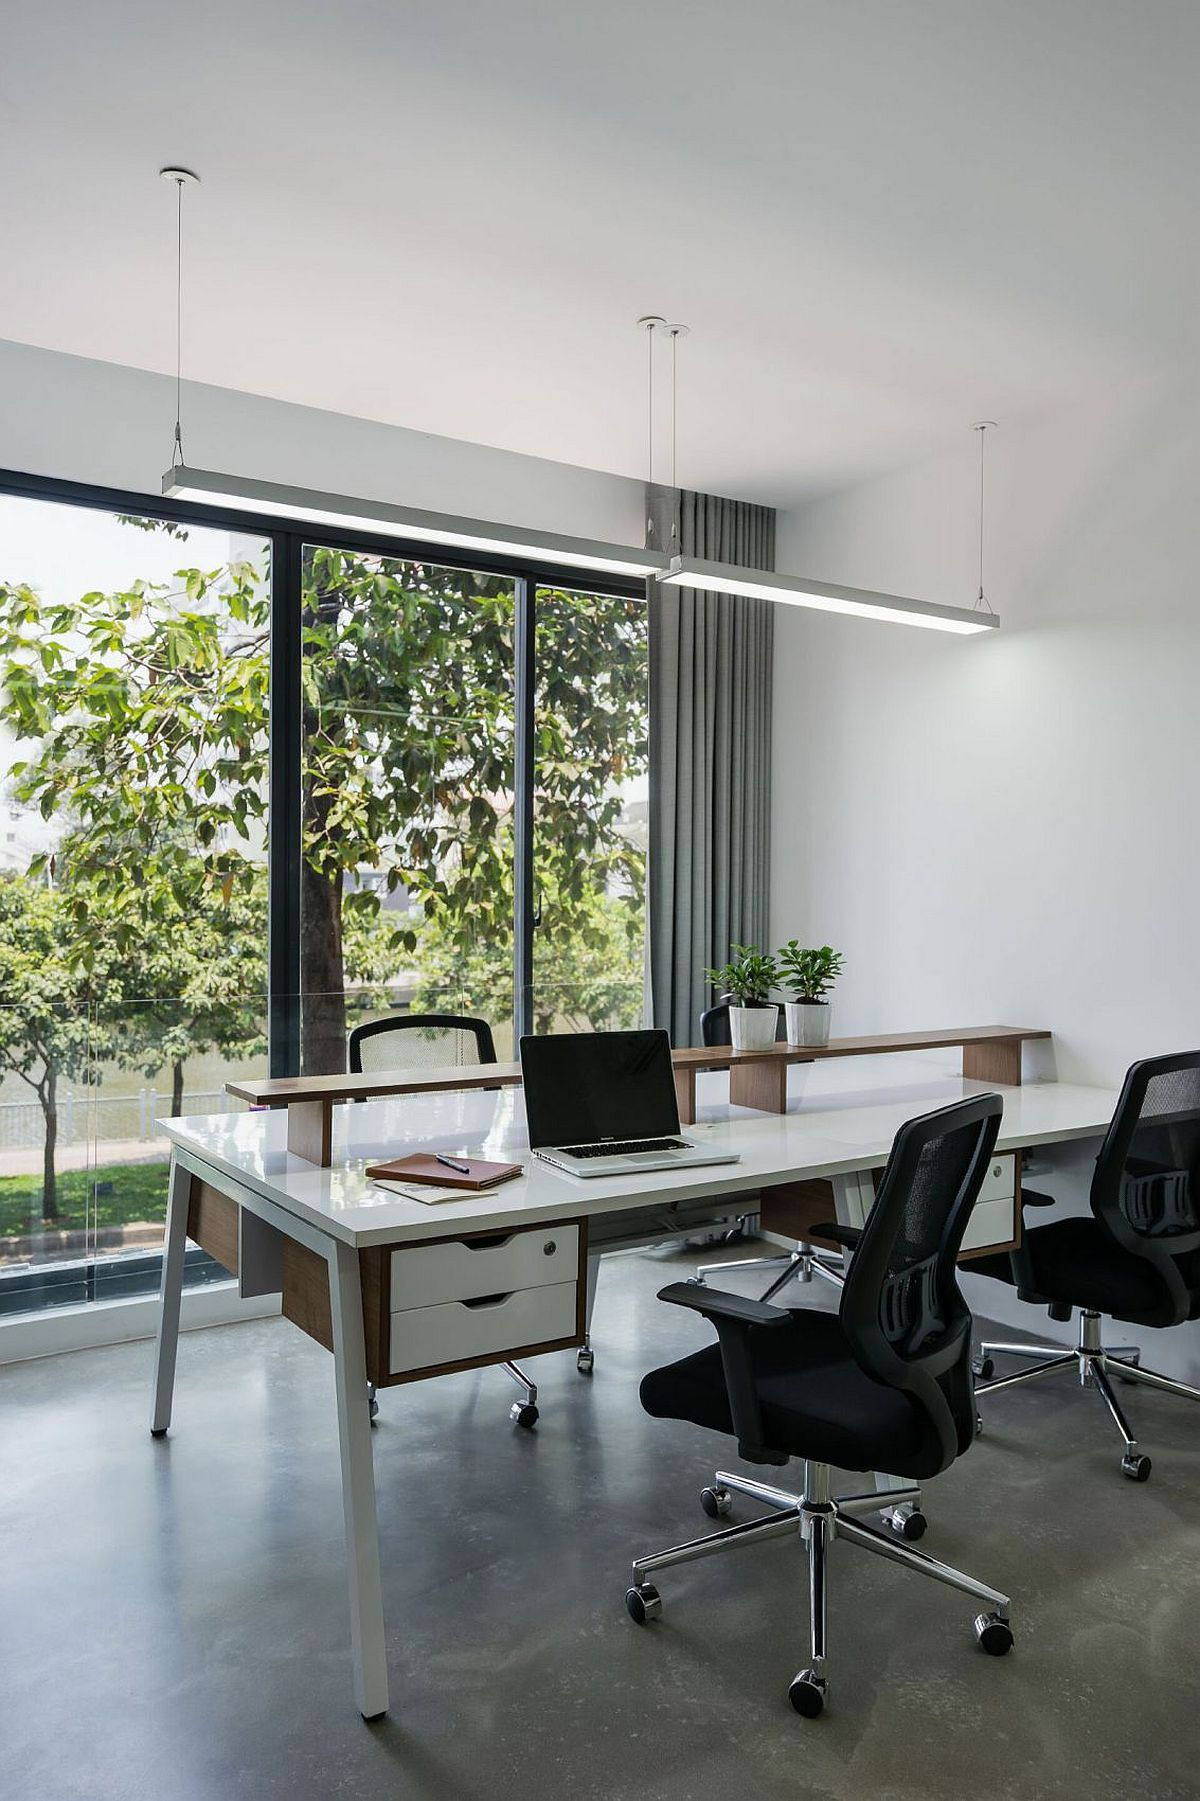 Ergonomic workstation with a view of the canal outside